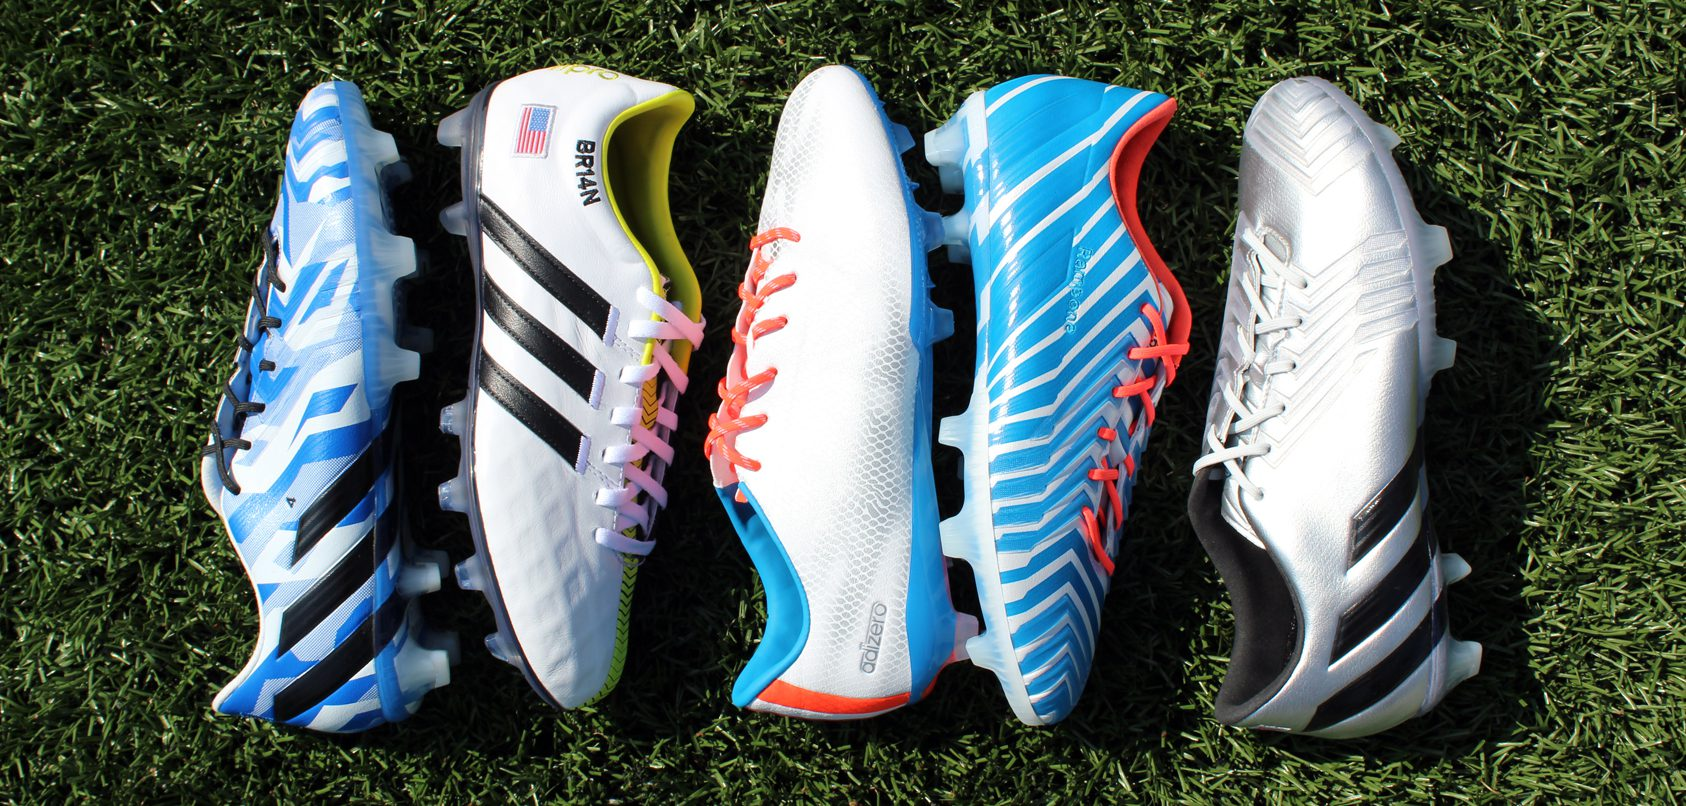 BMF Soccer  adidas 2015 FIFA Women s World Cup miadidas USA Cleat Pack 88045db46b